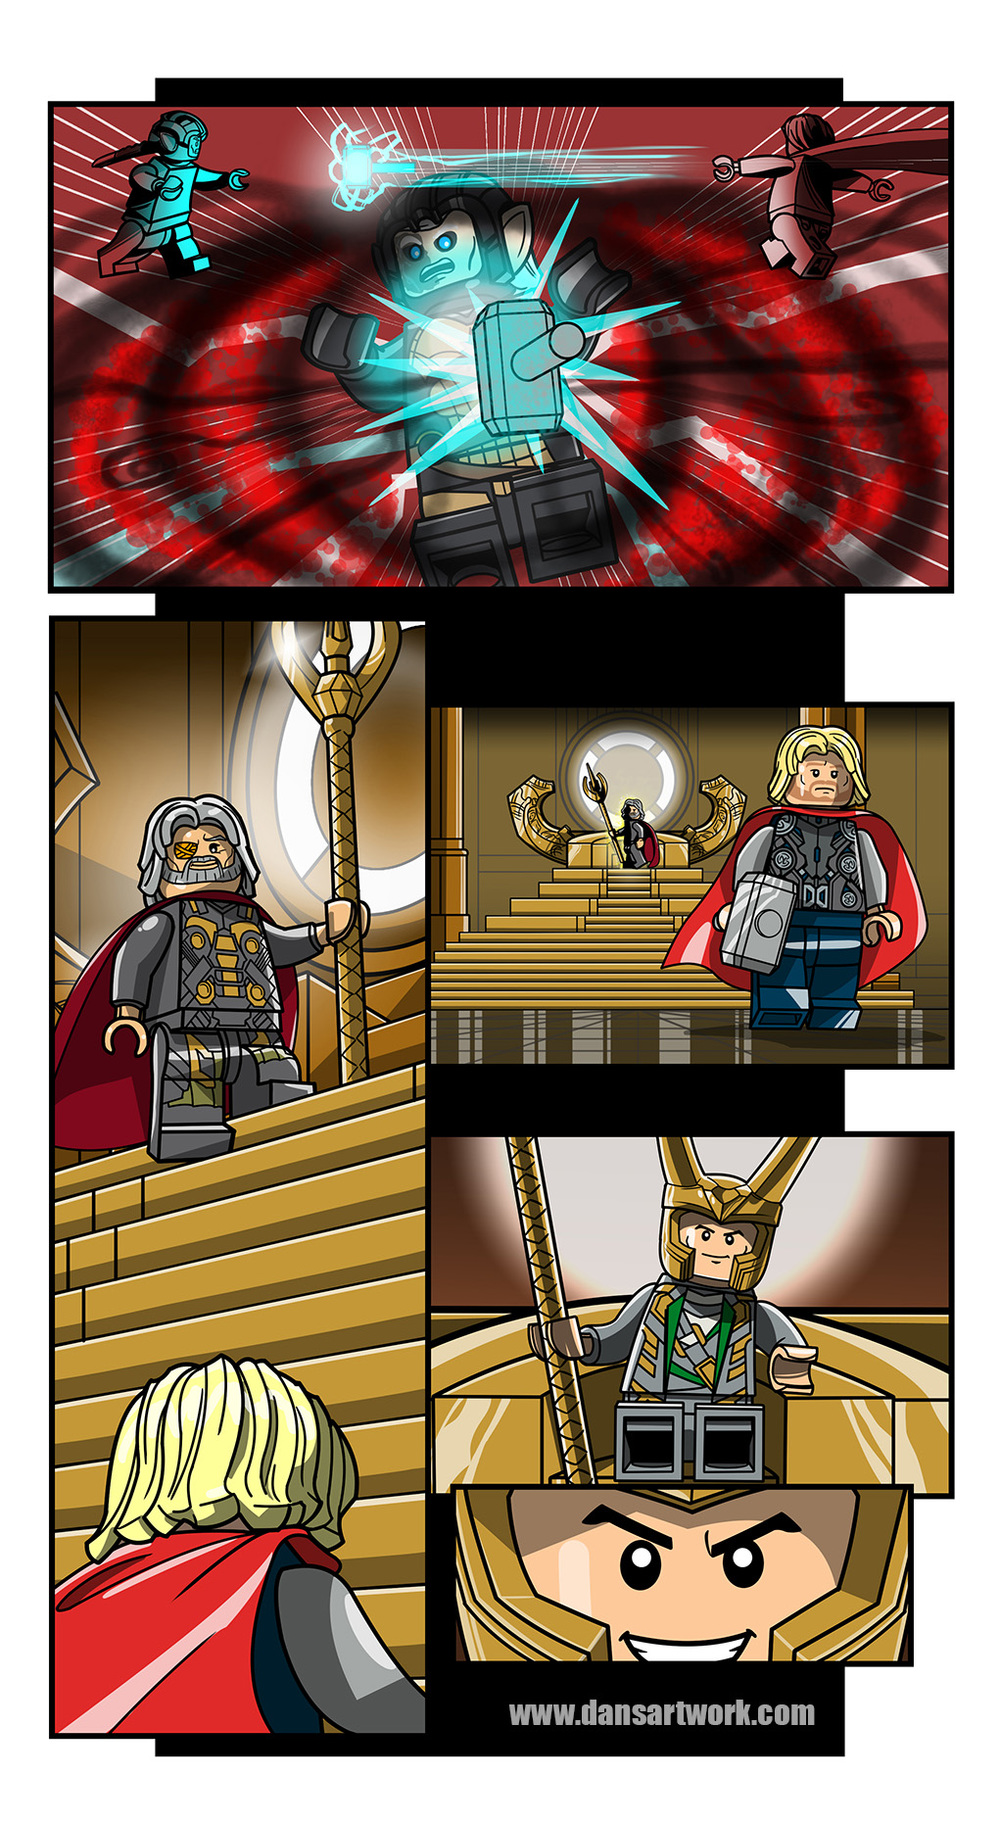 Thor2_Outro_Pg1_FinalColors_@dveese.jpg